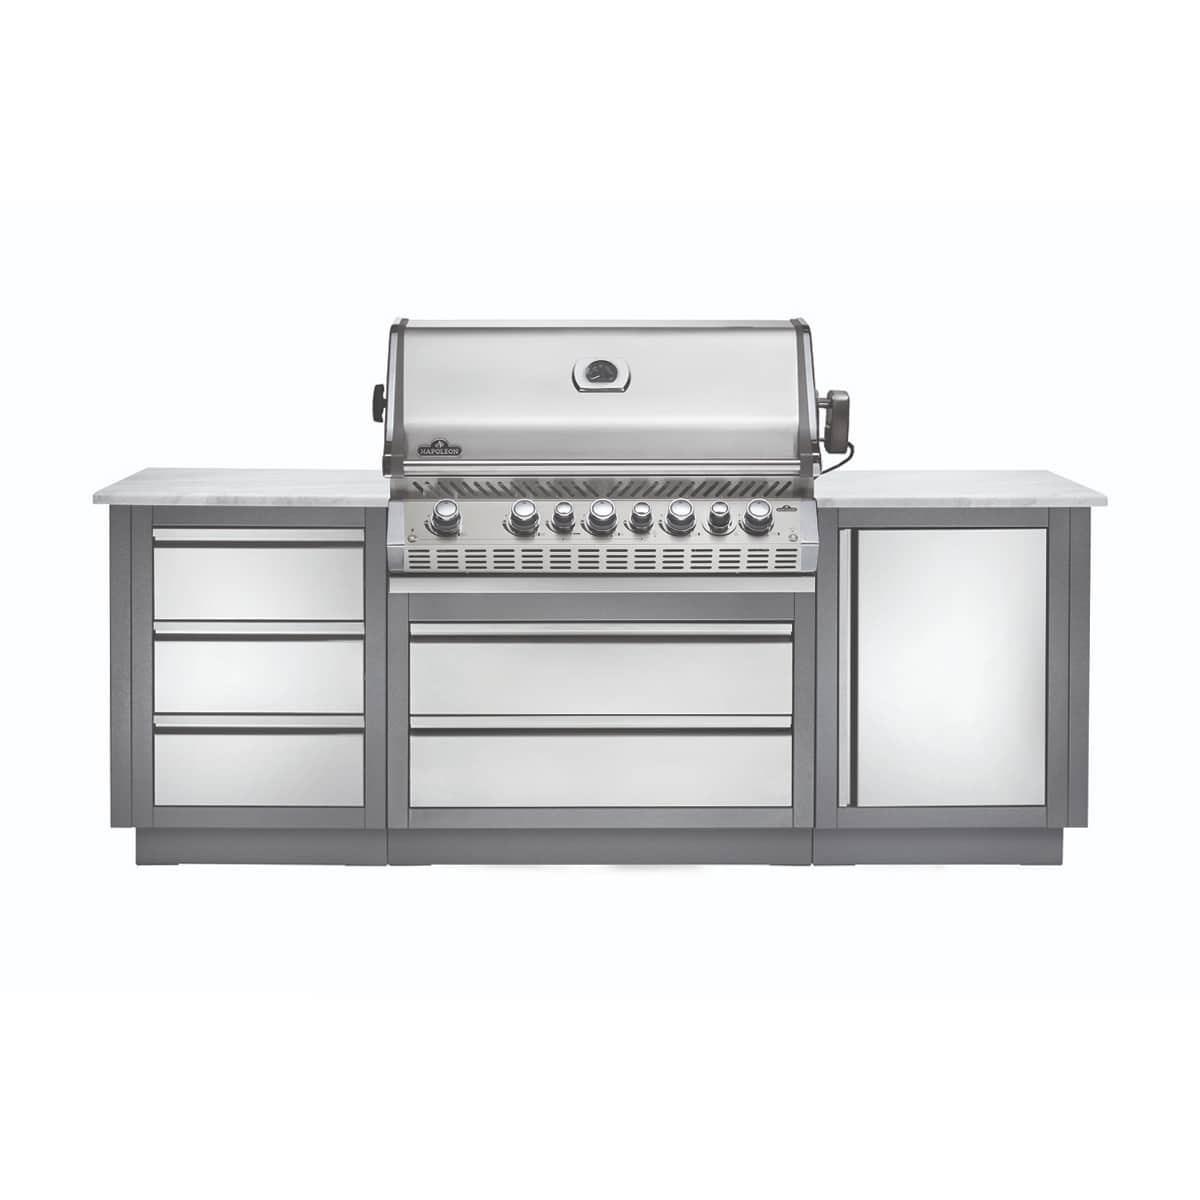 The Oasis 100 Grill Island With Prestige Pro 665 By Napoleon Provides A